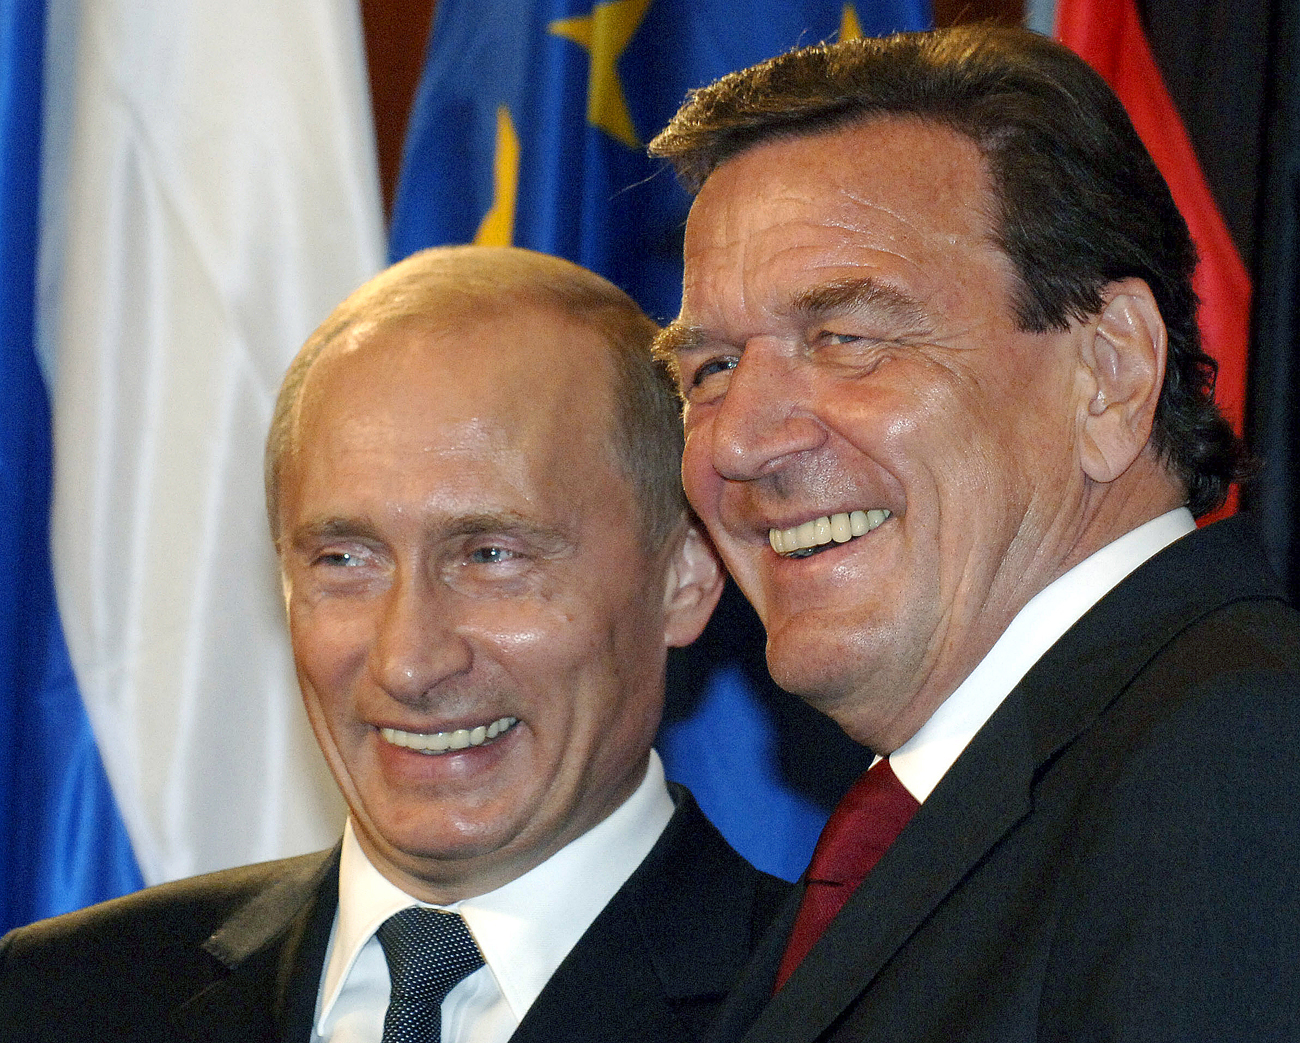 Forner Chancellor of Germany Gerhard Schröder (left) becomes the Chairman of the Board of Nord Stream 2 company, Tagesspiegel reports. Pictured: Vladimir Putin and Gerhard Schröder, Sept. 8, 2005.